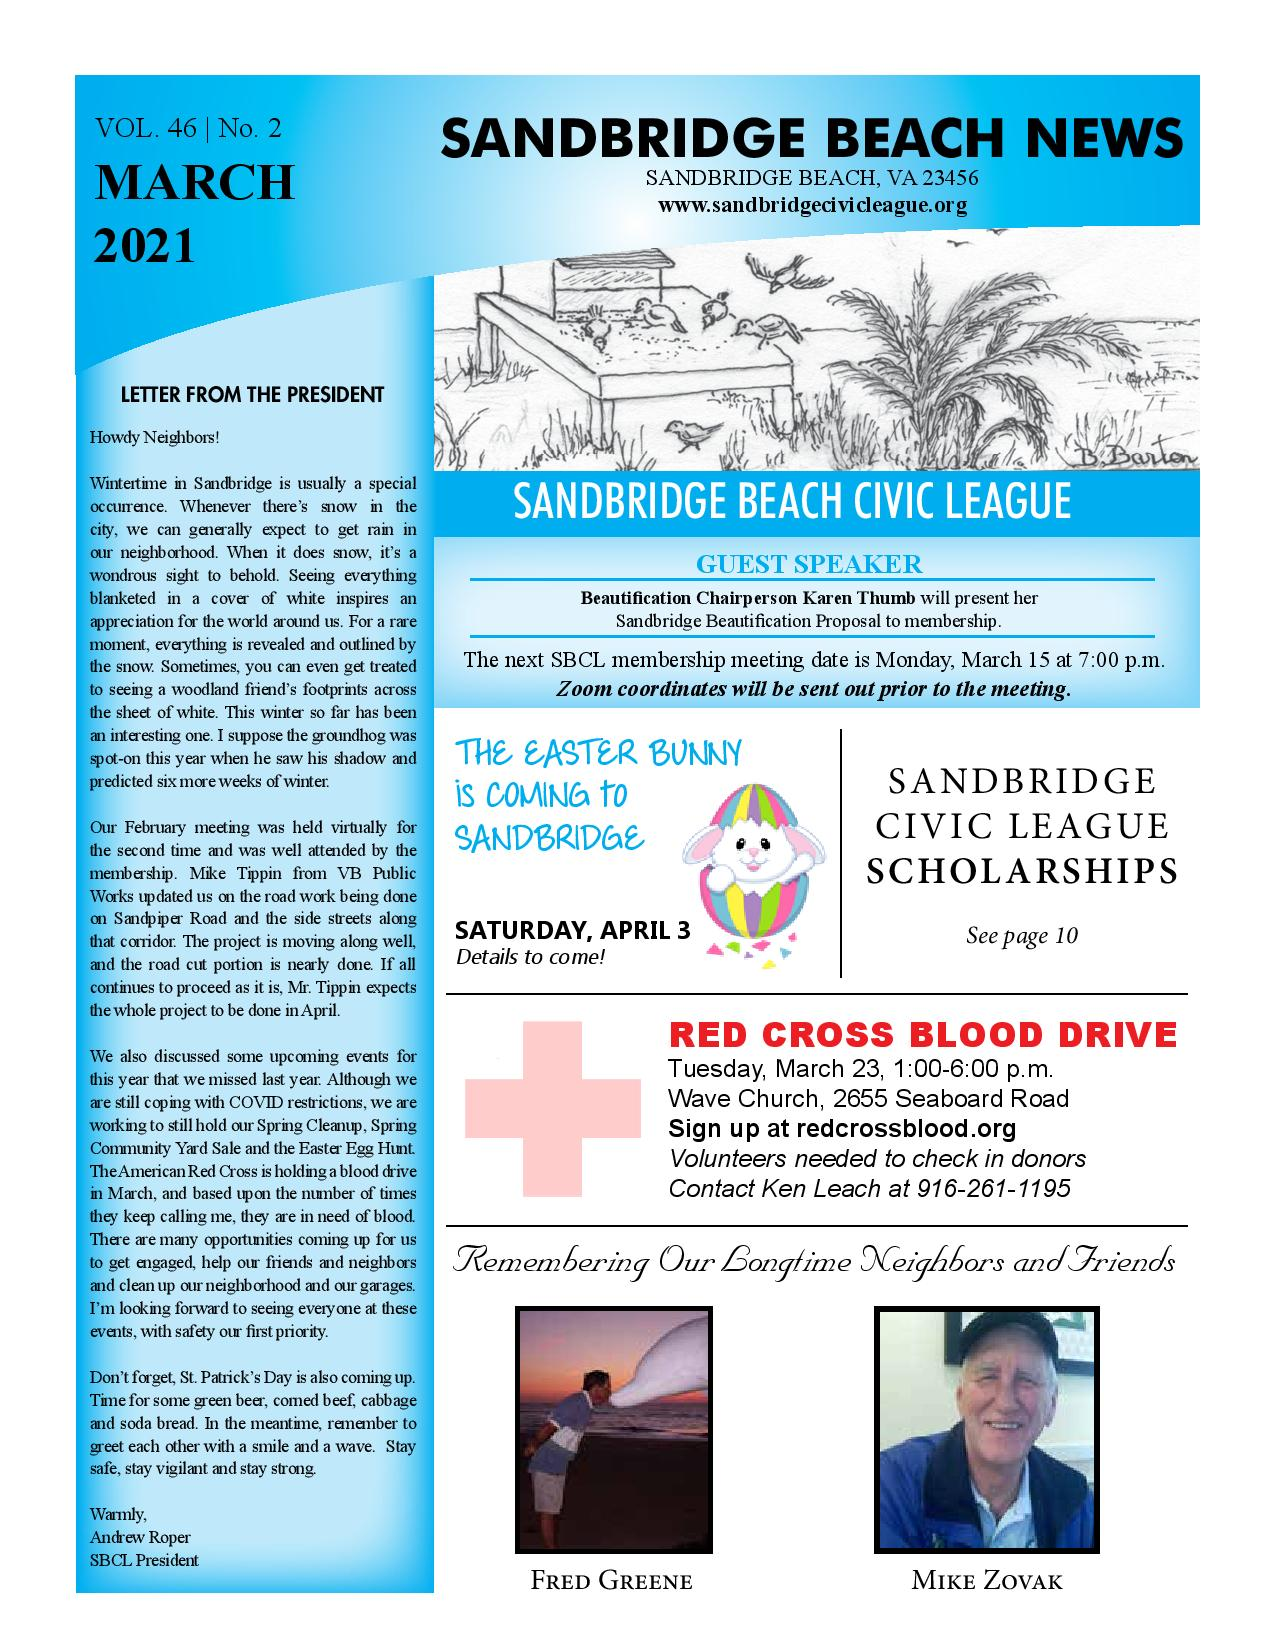 SBCL Newsletter Cover March 2021